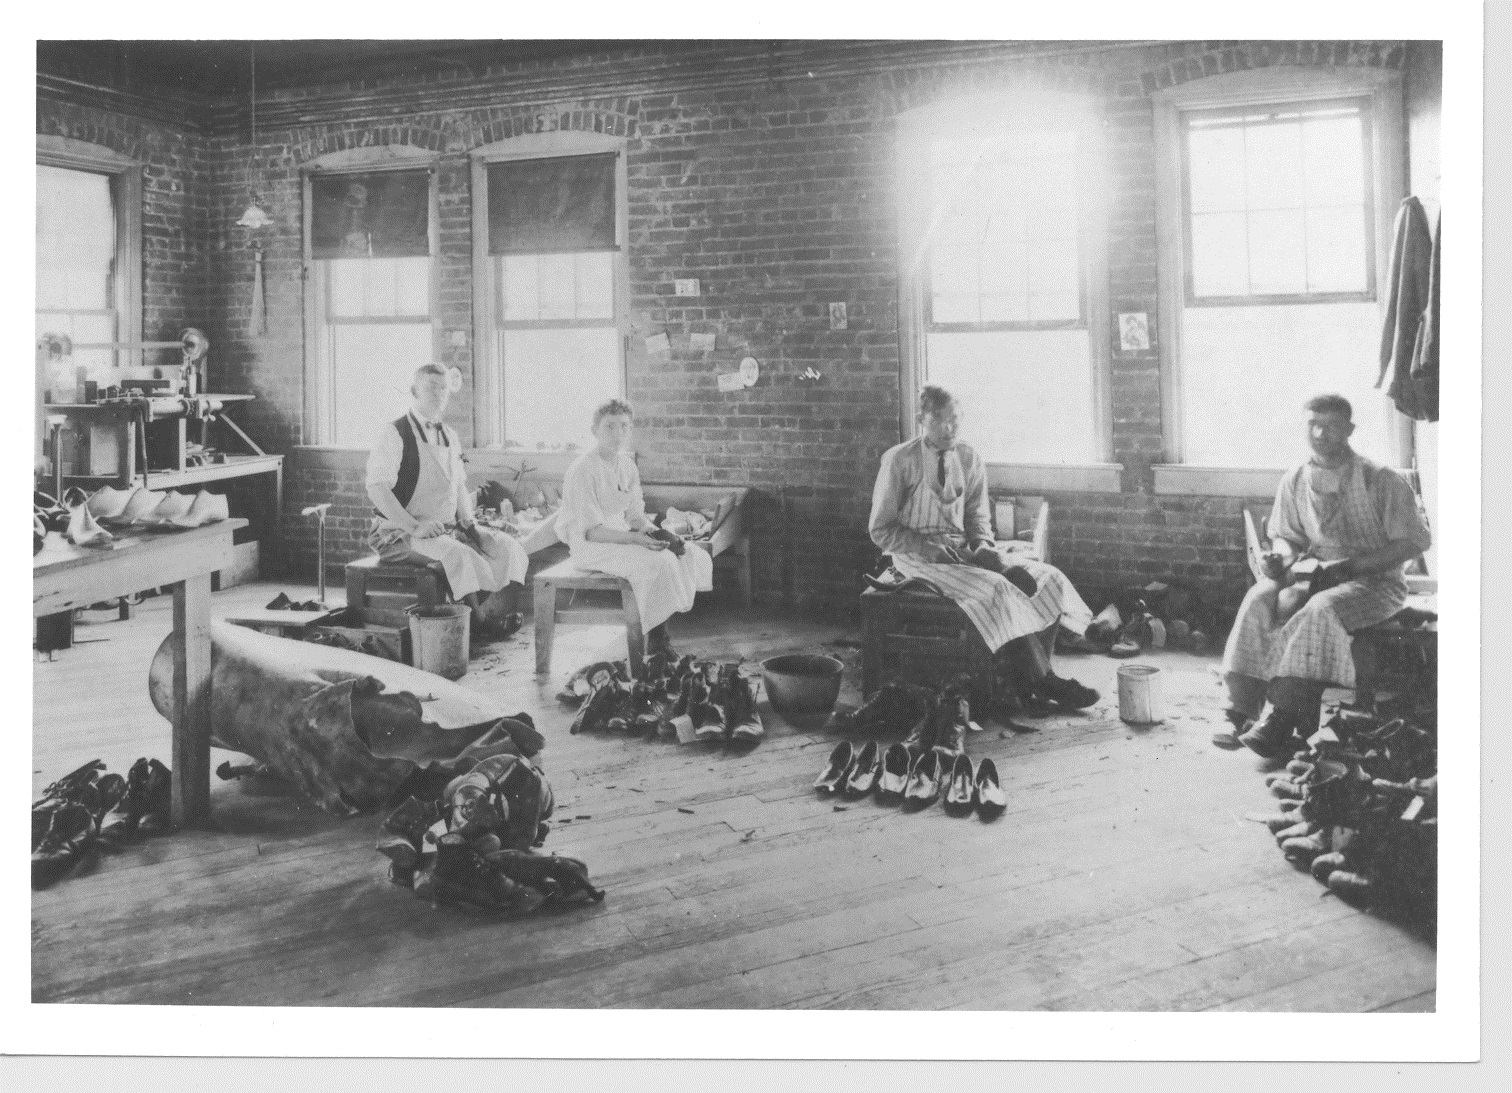 Image of men working in shoe shop at Craig Colony inside brick building